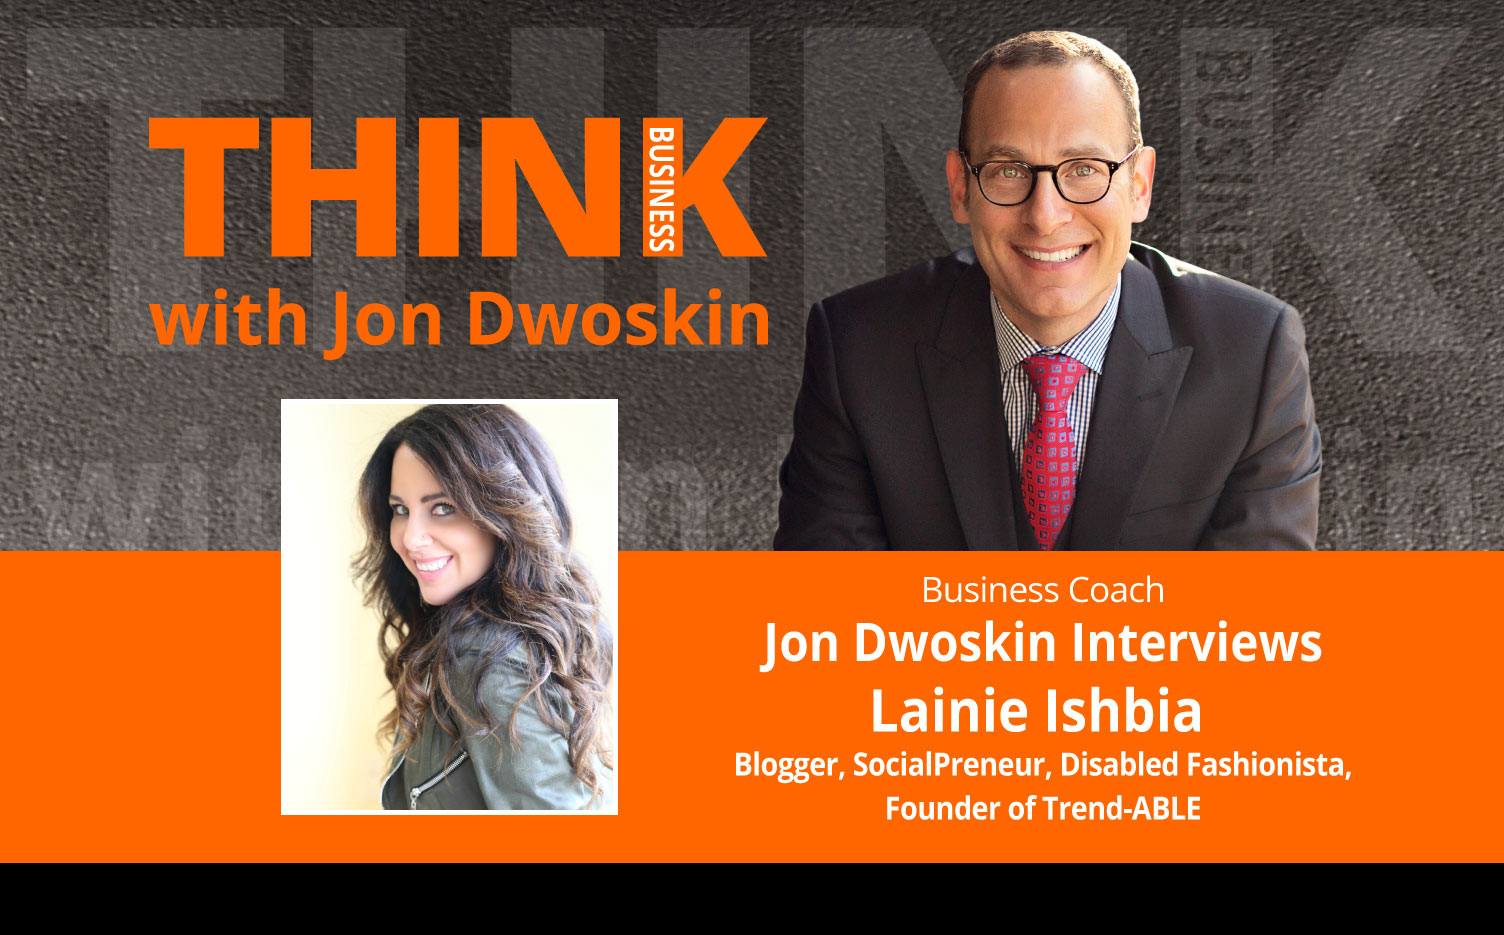 THINK Business Podcast: Jon Dwoskin Interviews Lainie Ishbia, Blogger, SocialPreneur, Disabled Fashionista, Founder of Trend-ABLE